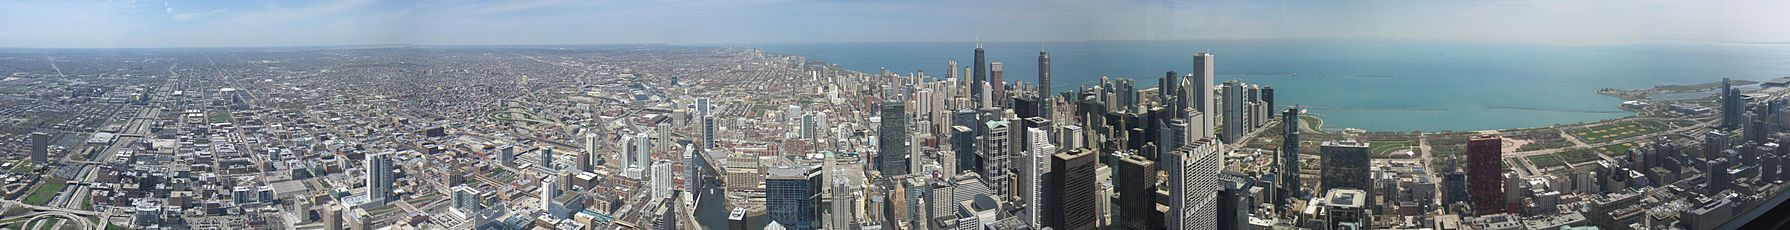 View of Chicago greater metropolitan region and the dense downtown area from the Willis Tower